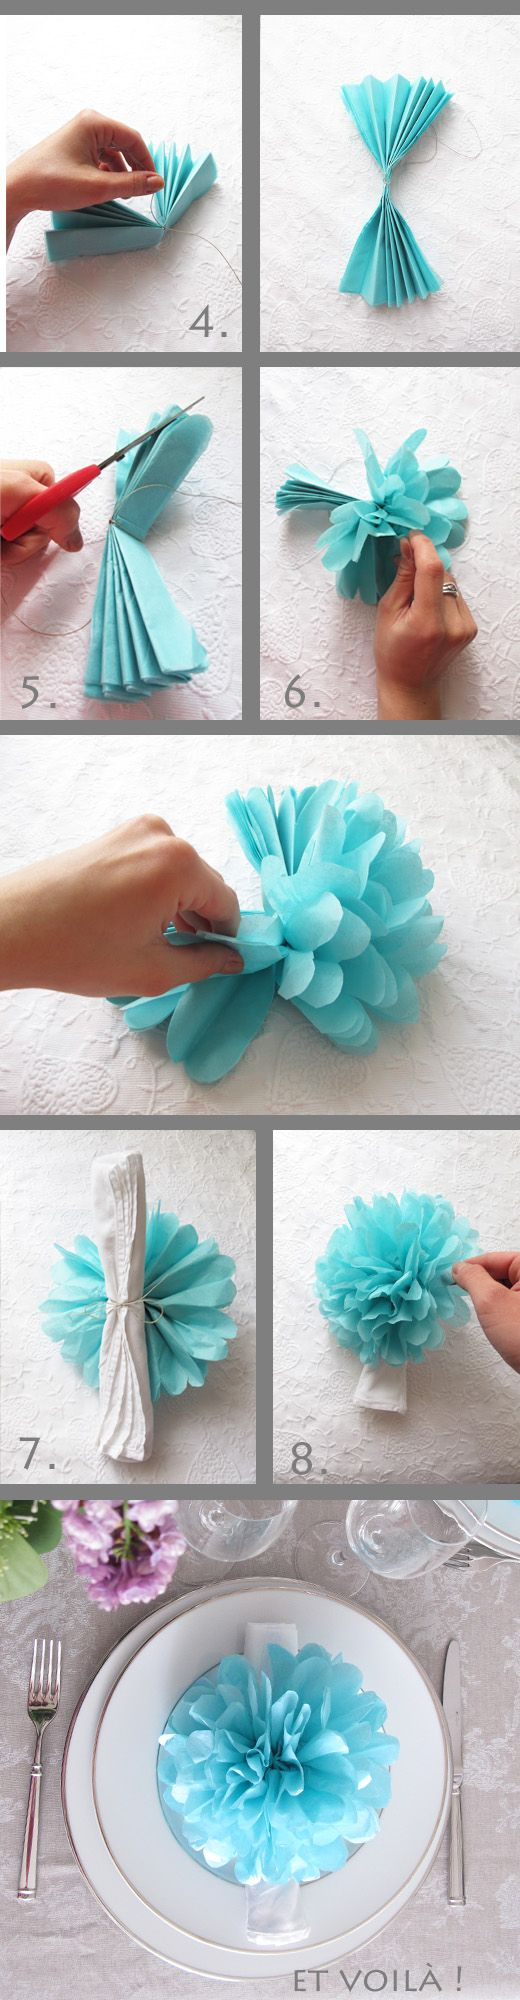 wedding tutorial  With peach, coral, or mint!-seriously adorable! Not so much for wedding, but bridal lunch or rehearsal dinner.: